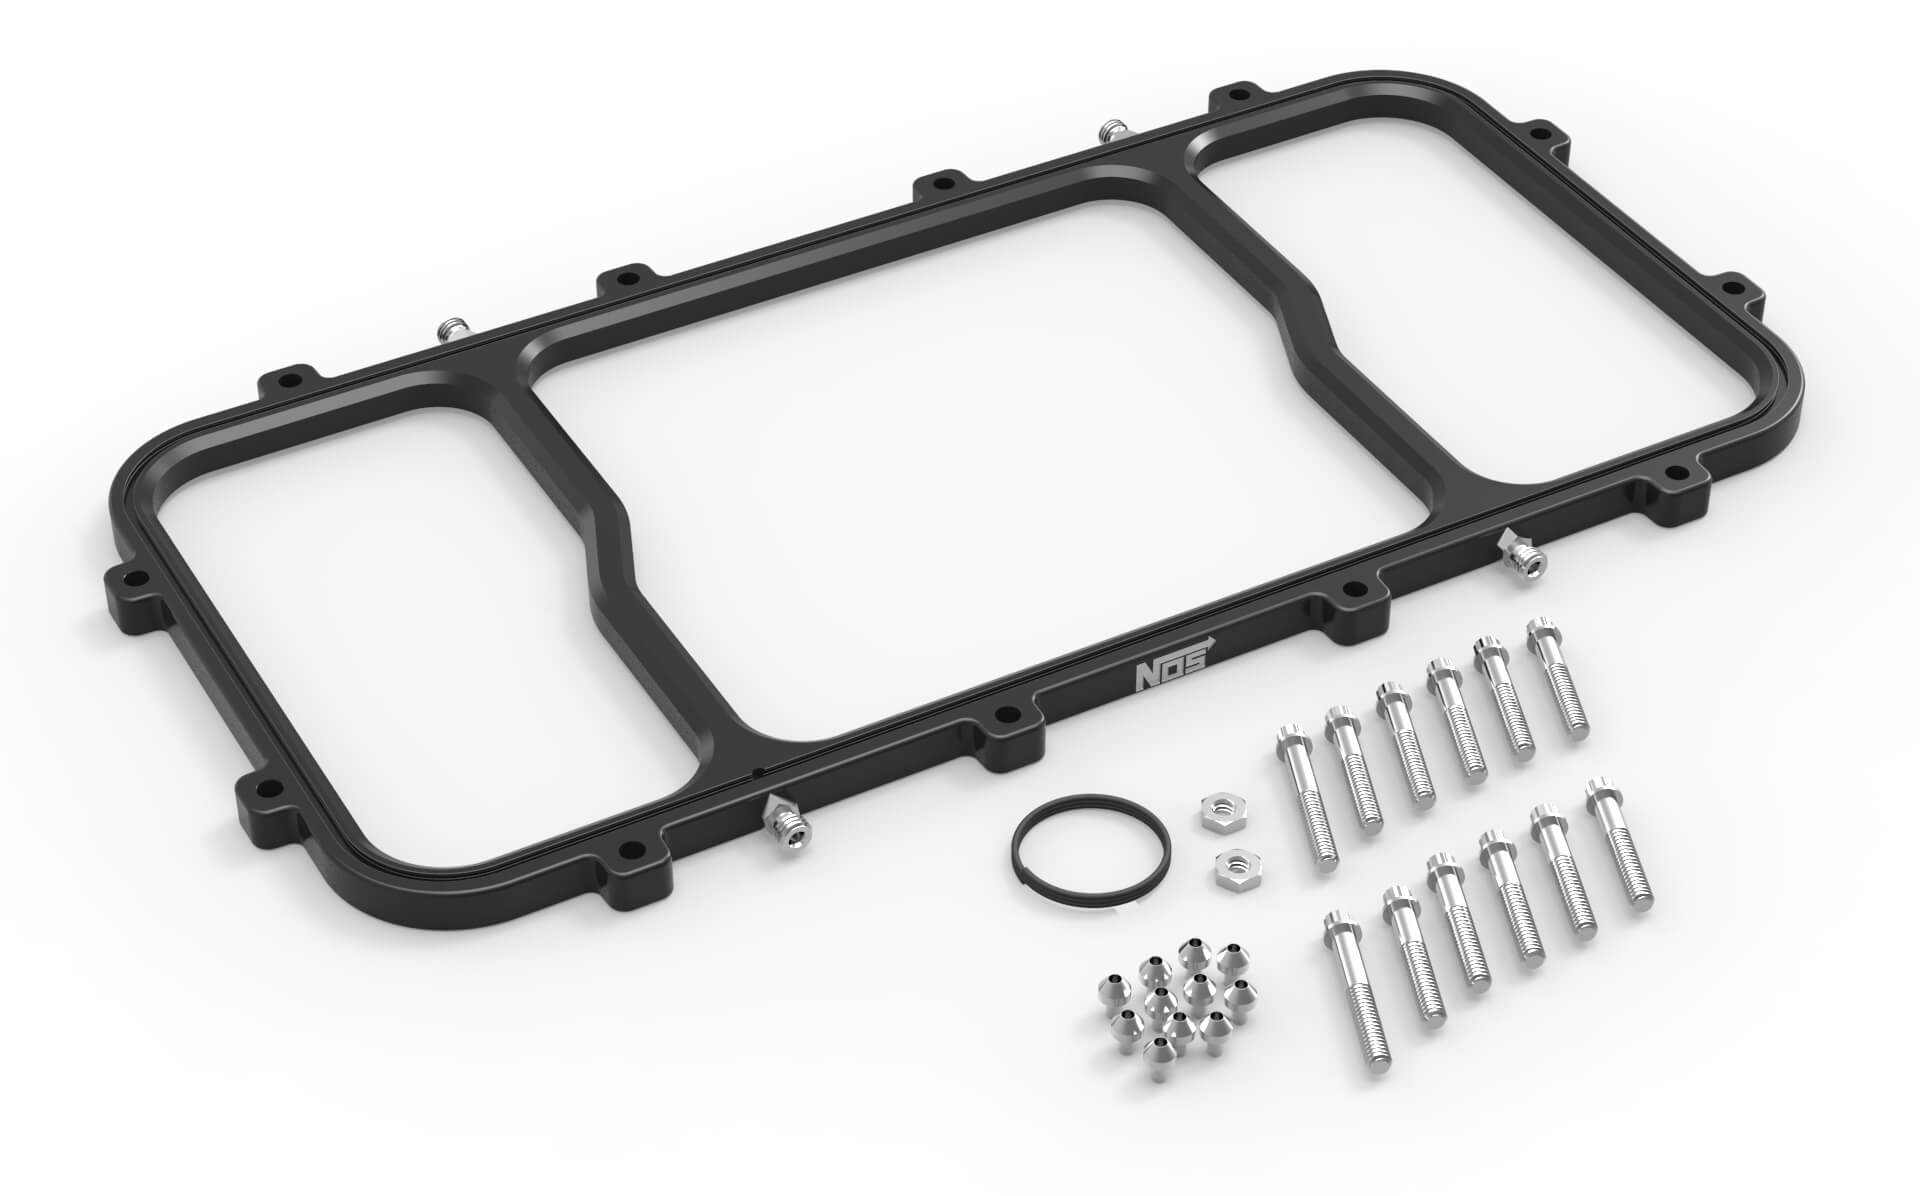 NOS Dry Nitrous Spacer Plate for Holley LS Hi-Ram EFI Intake Manifolds - Black